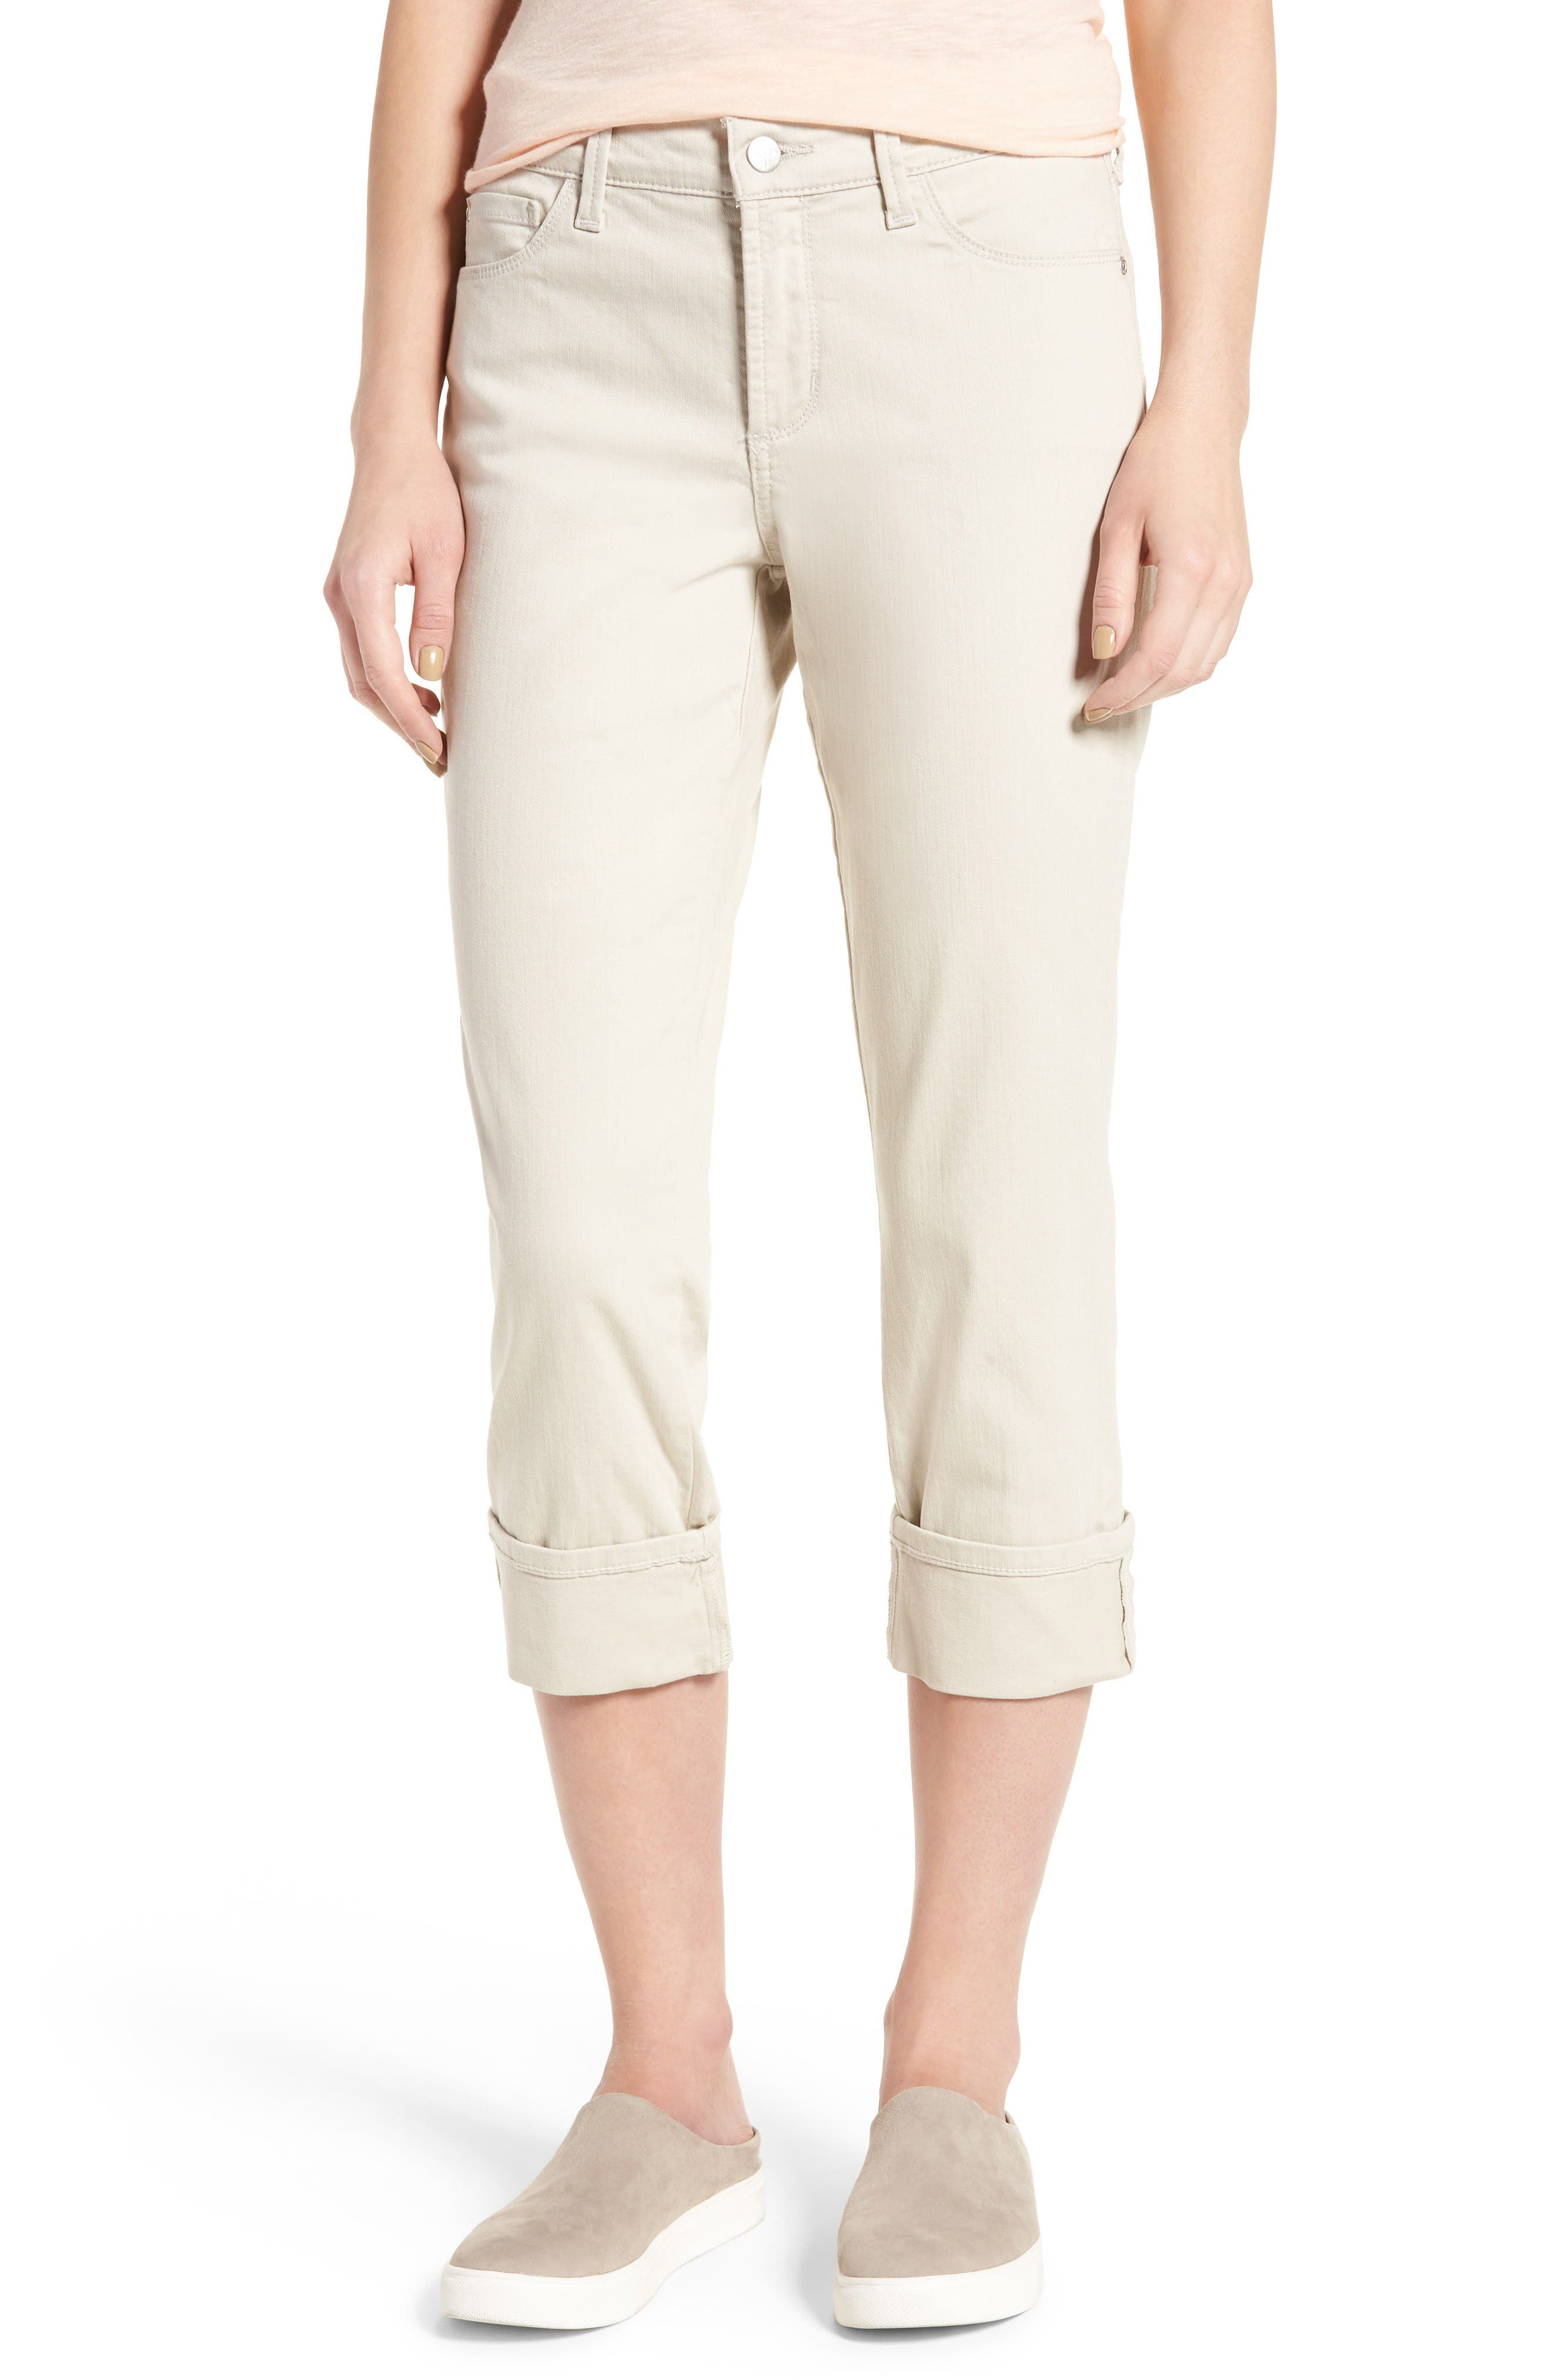 NYDJ Dayla Colored Wide Cuff Capri Jeans (Regular & Petite)